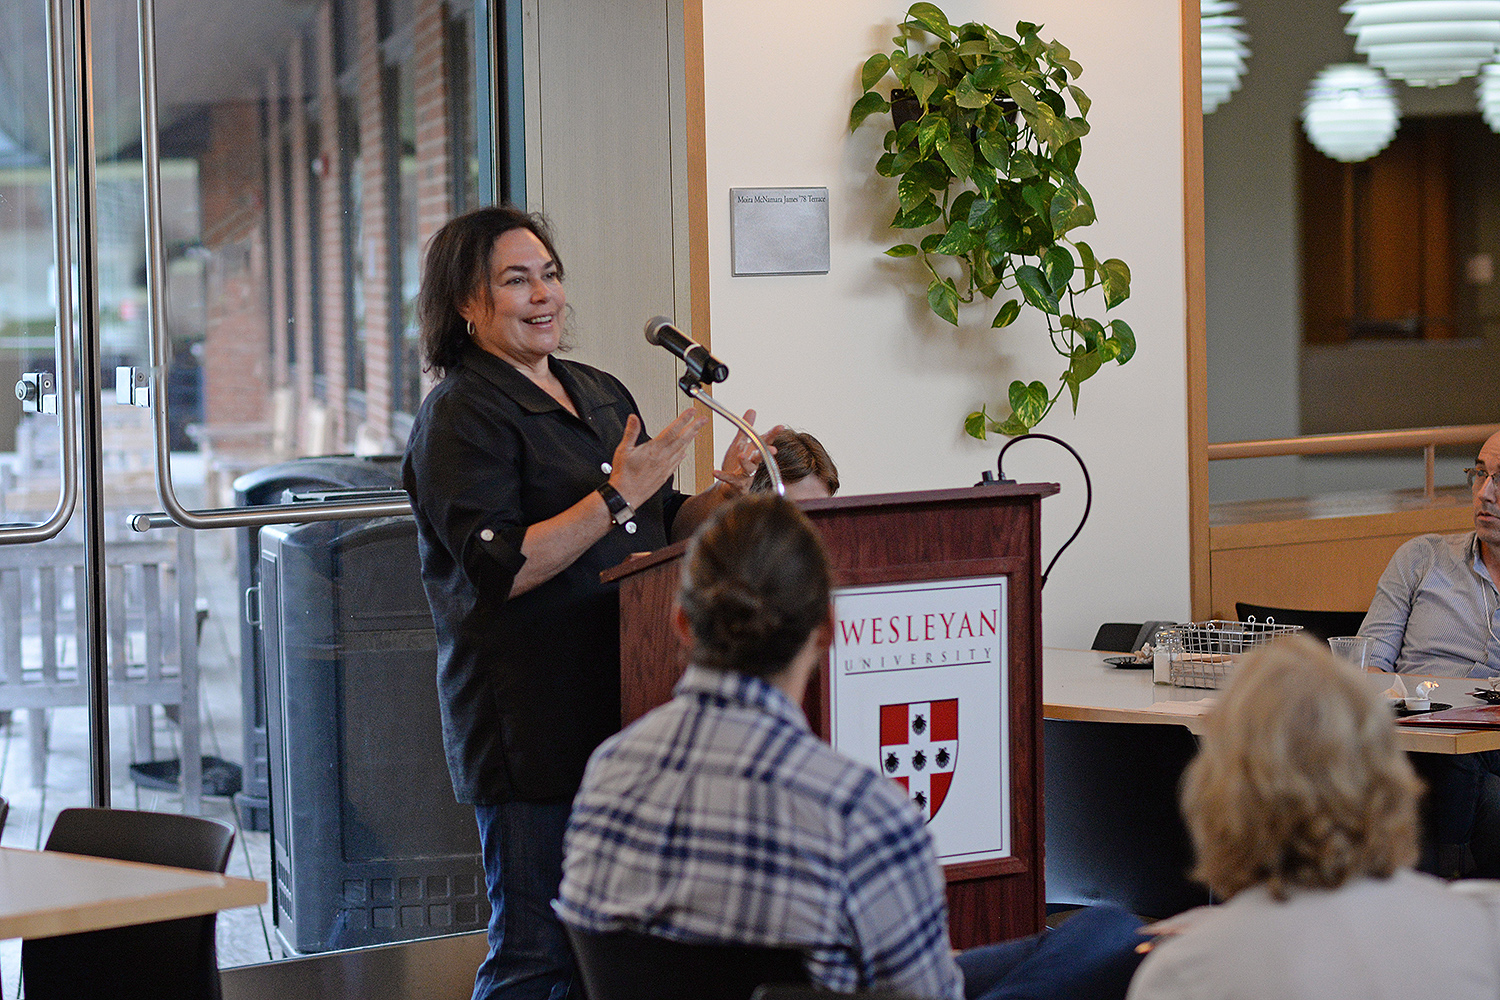 Amy Bloom, the Distinguished University Writer-in-Residence at Wesleyan, made remarks at the Writing Conference. Bloom is the author of three novels, three collections of short stories, a children's book, and an essay collection. She has been a nominee for both the National Book Award and the National Book Critics Circle Award.